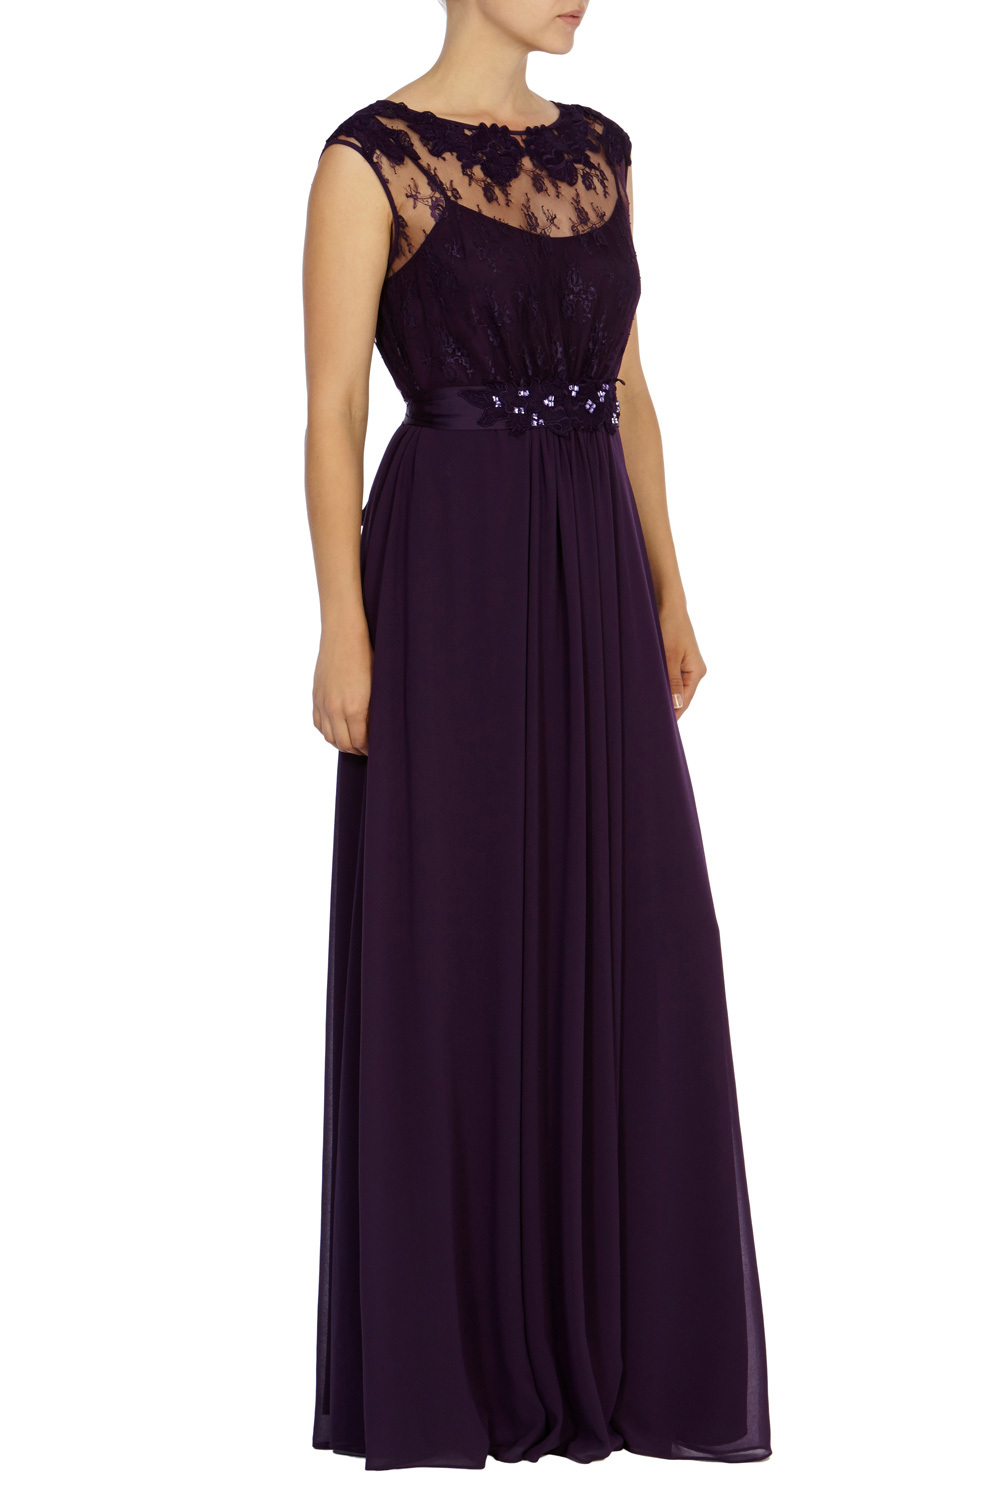 Lori May Maxi Dress - neckline: slash/boat neckline; pattern: plain; sleeve style: sleeveless; style: maxi dress; predominant colour: aubergine; occasions: evening, occasion; length: floor length; fit: fitted at waist & bust; sleeve length: sleeveless; texture group: sheer fabrics/chiffon/organza etc.; pattern type: fabric; embellishment: lace; season: s/s 2015